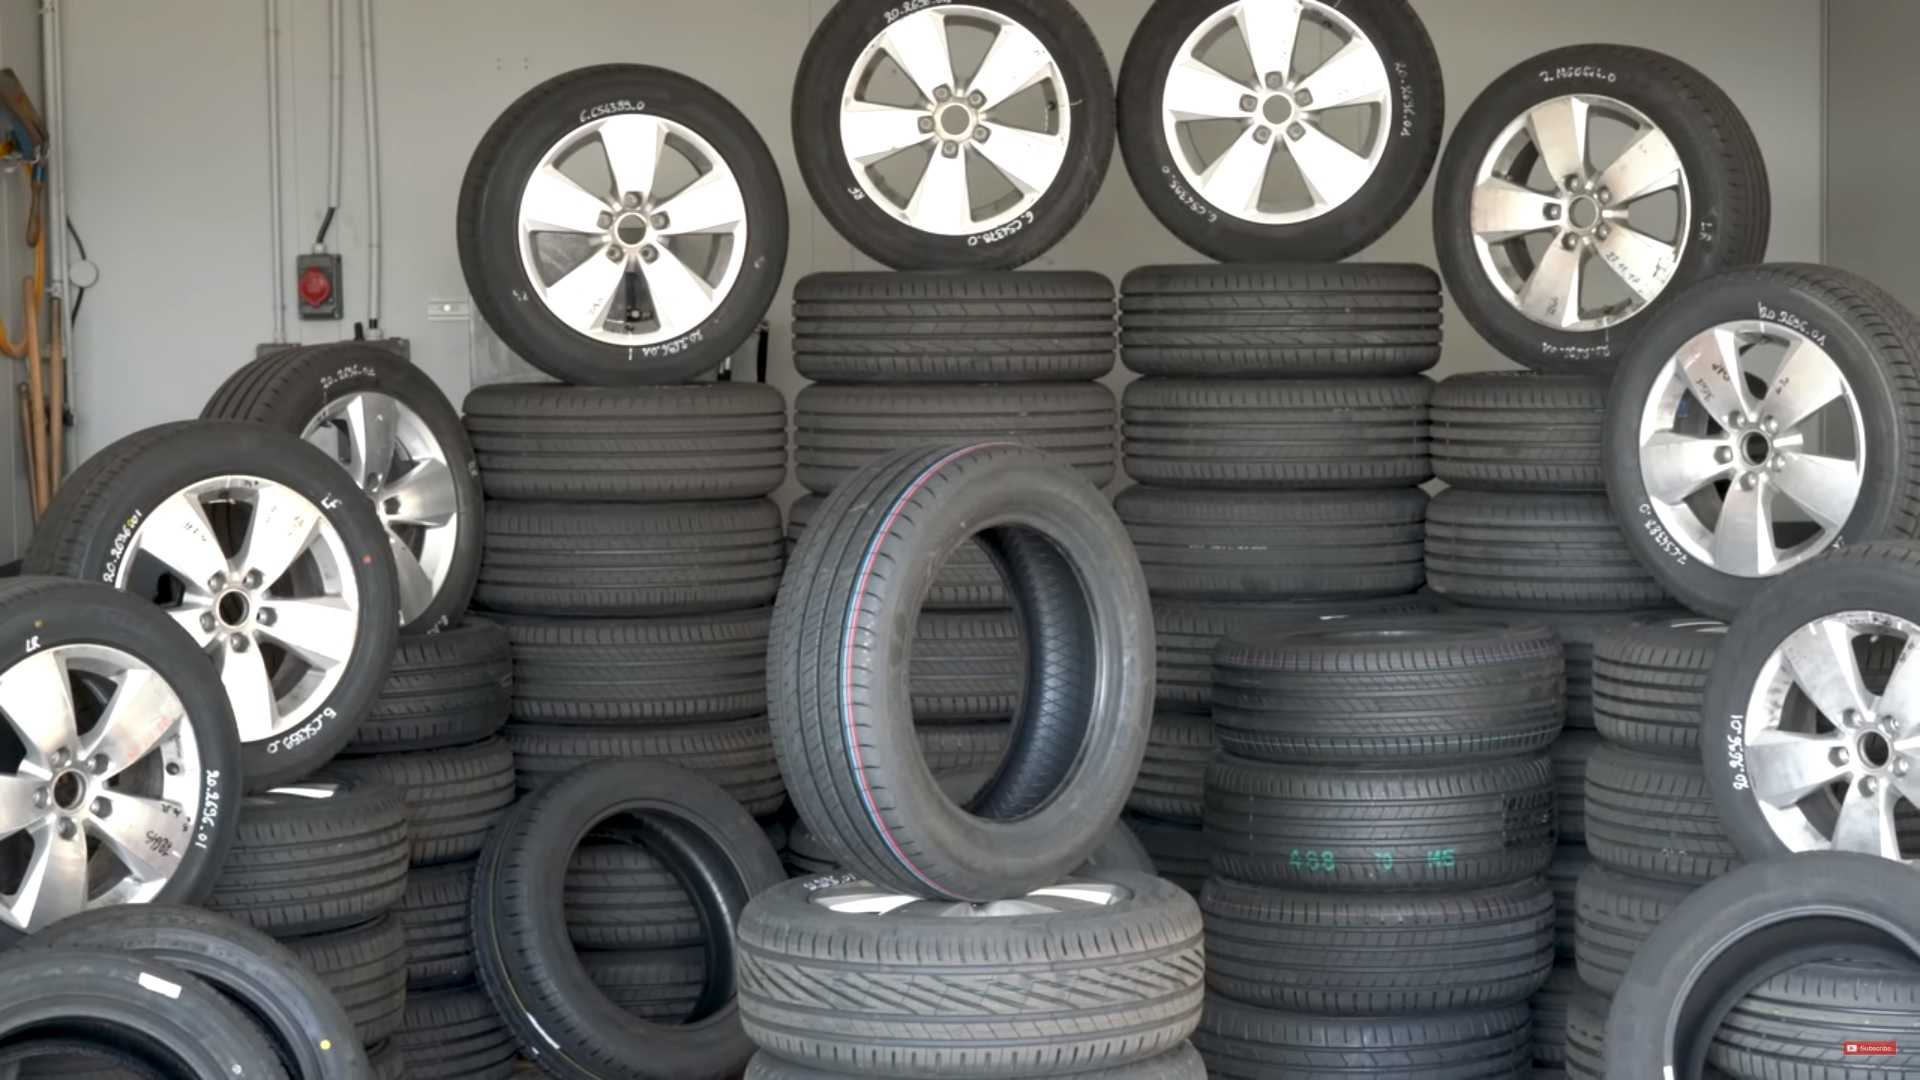 12 Tire Brands For Everyday Use Tested In Detailed Video Review